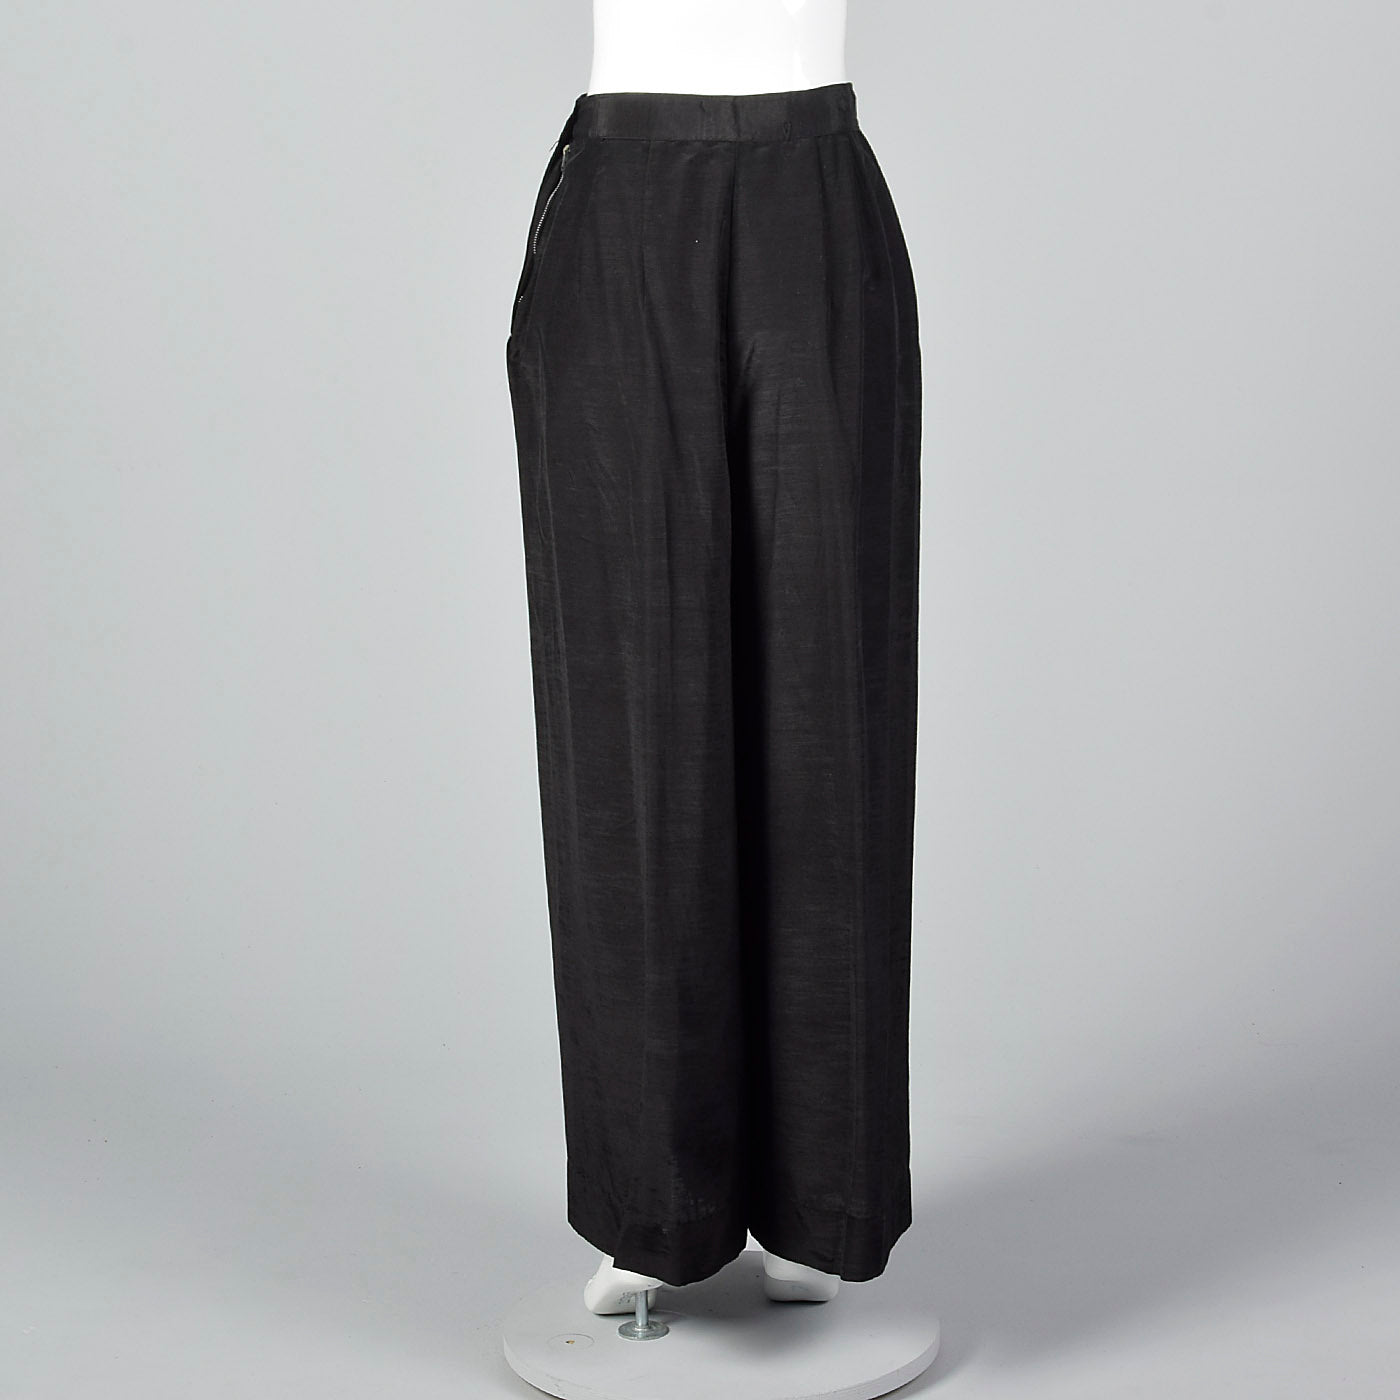 1930s Black Wide Leg Pants